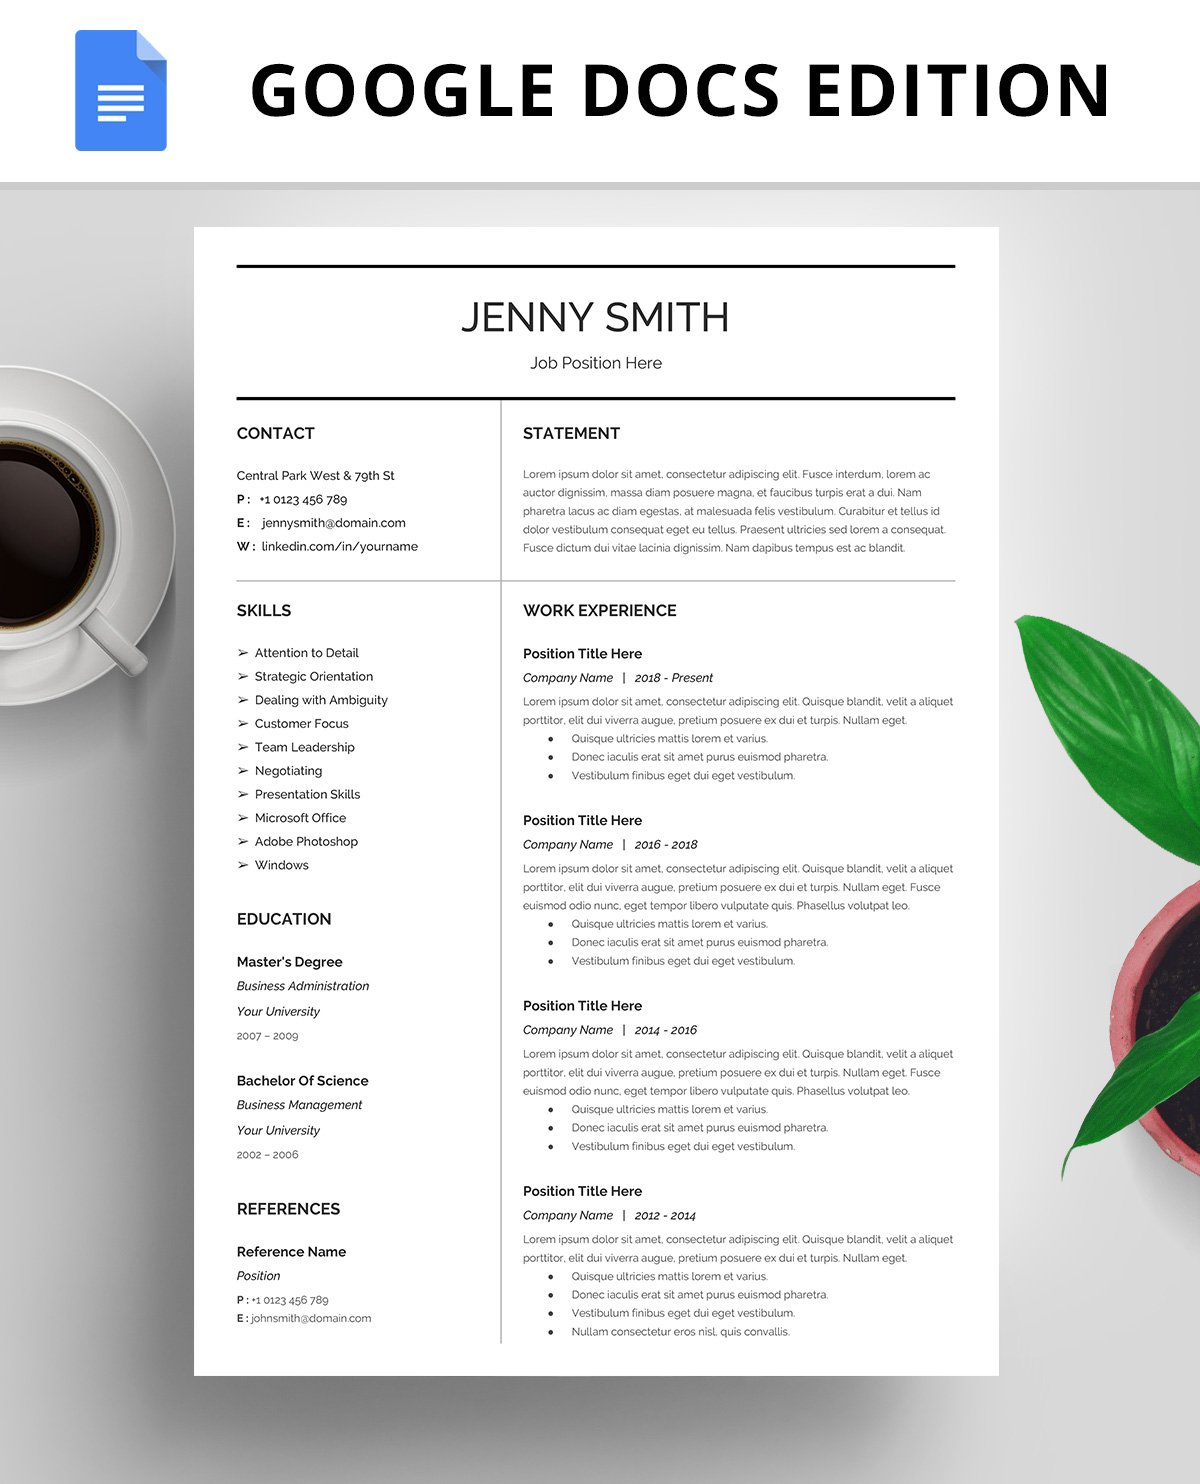 Resume Template CV Google Docs Templates Creative Market